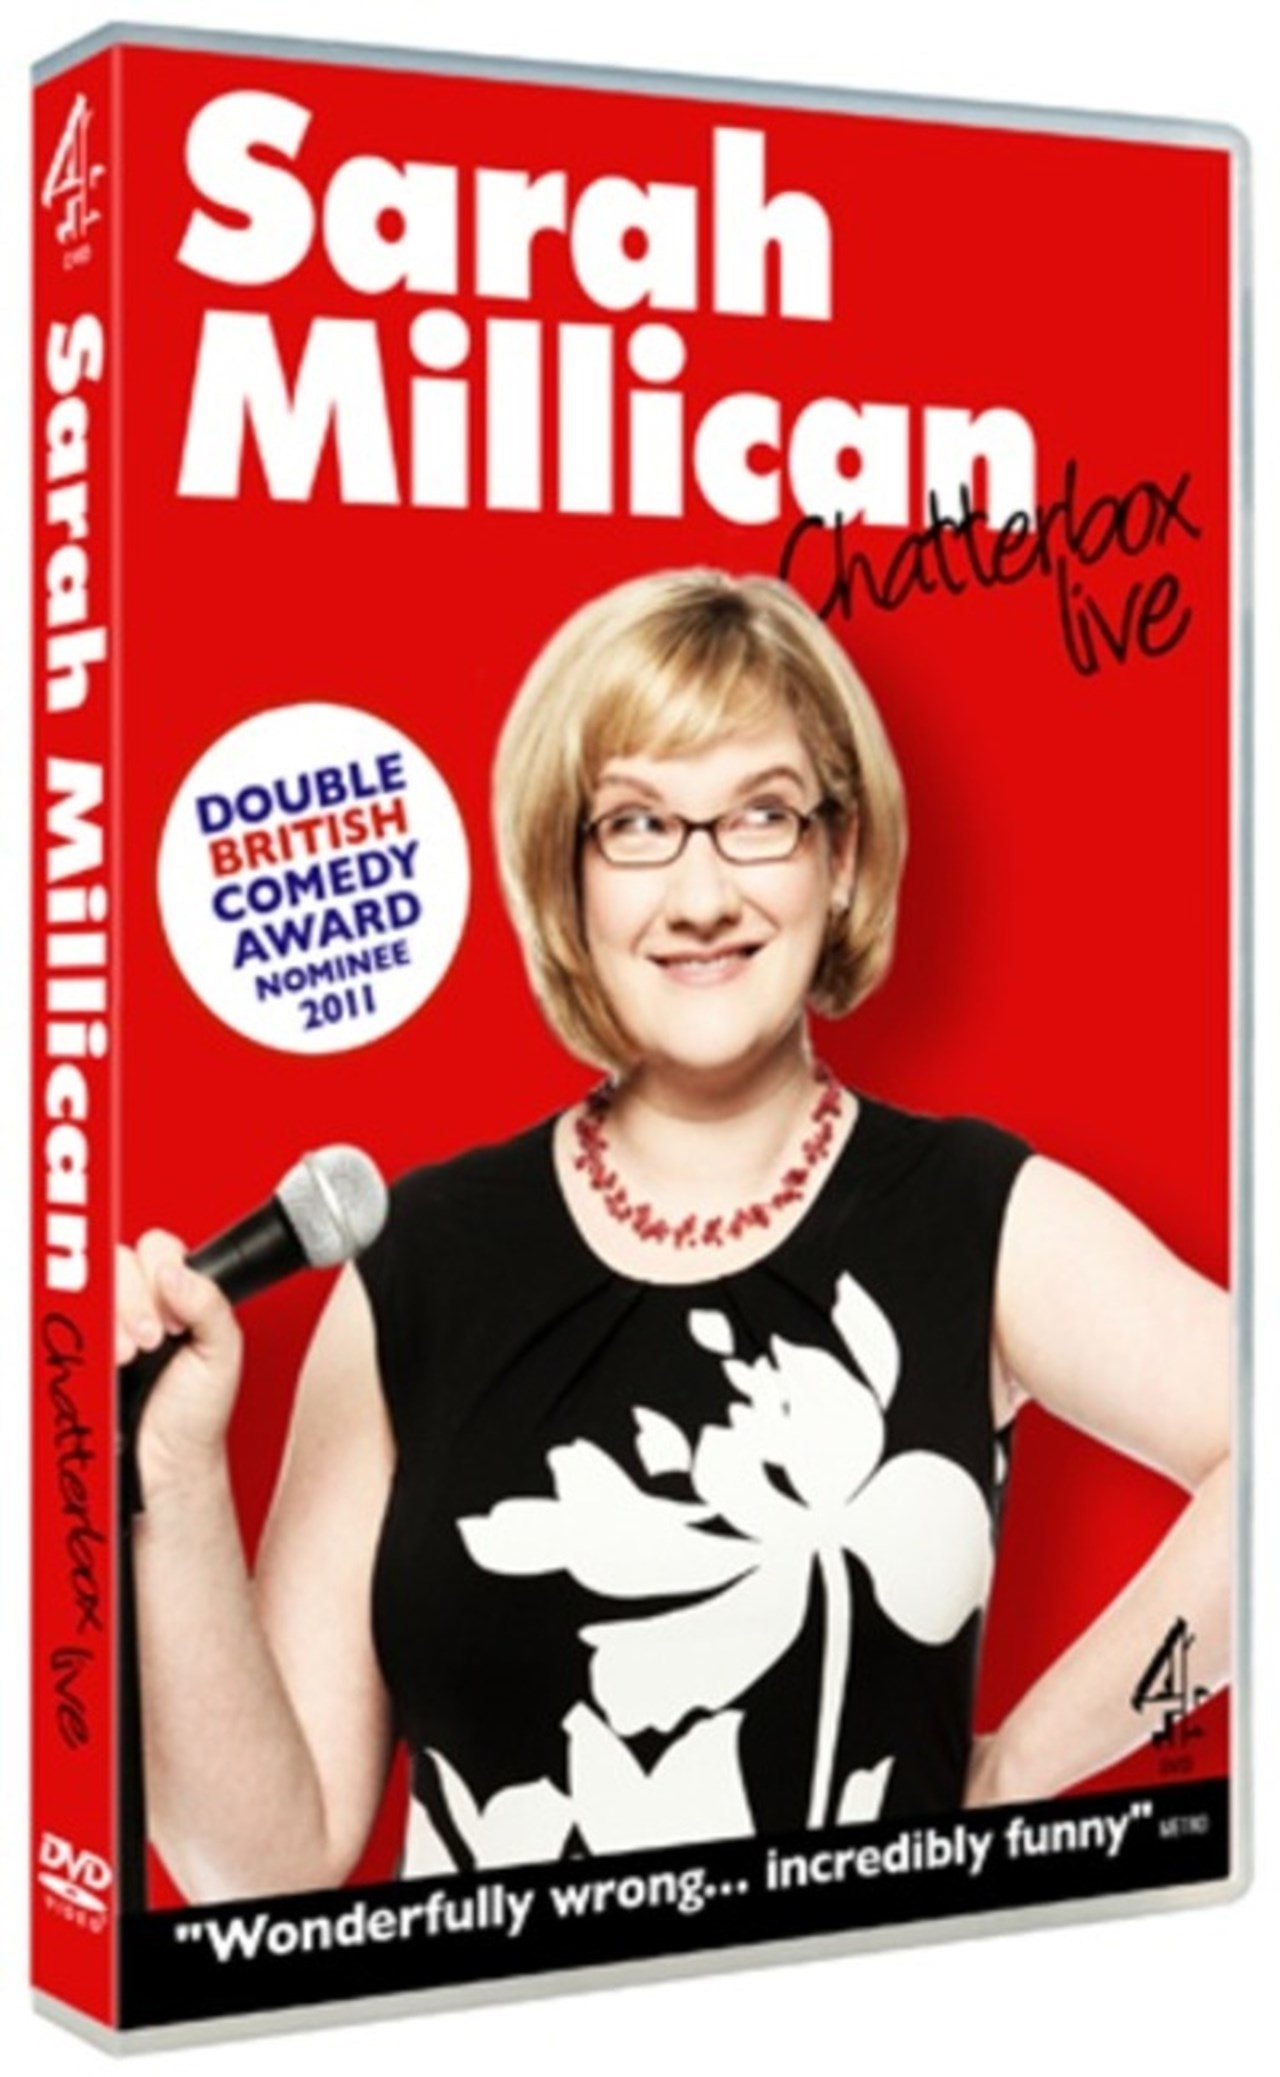 Sarah Millican: Chatterbox Live - 1